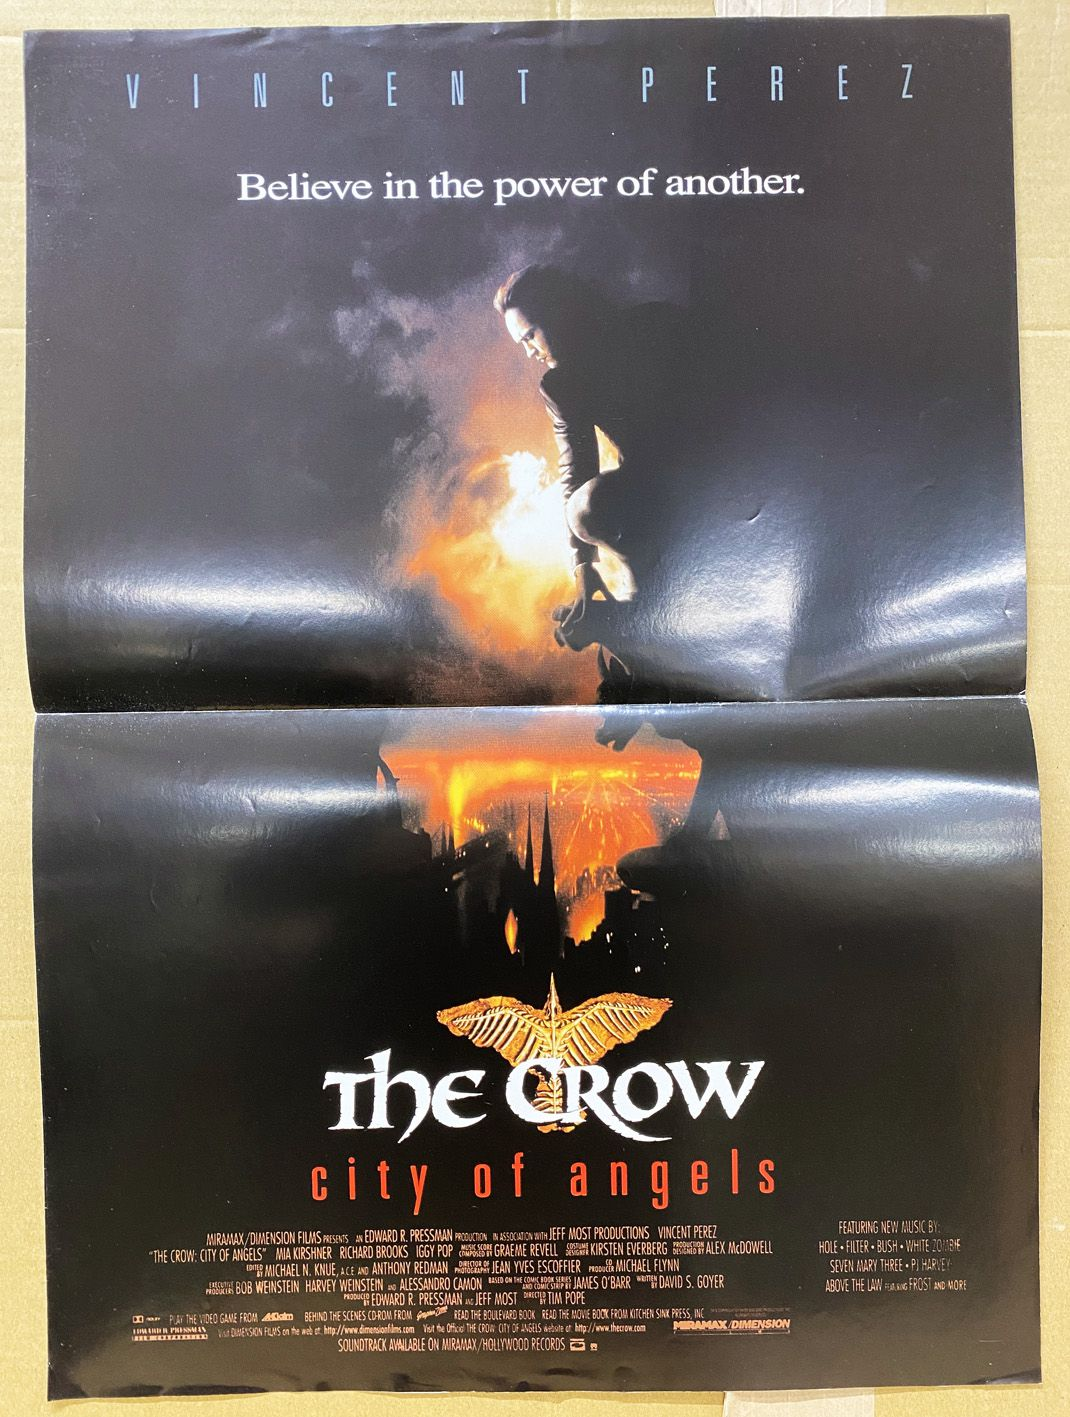 The Crow: City of Angels (Vincent Perez) - Movie Poster 40x60cm - Miramax Films 1996